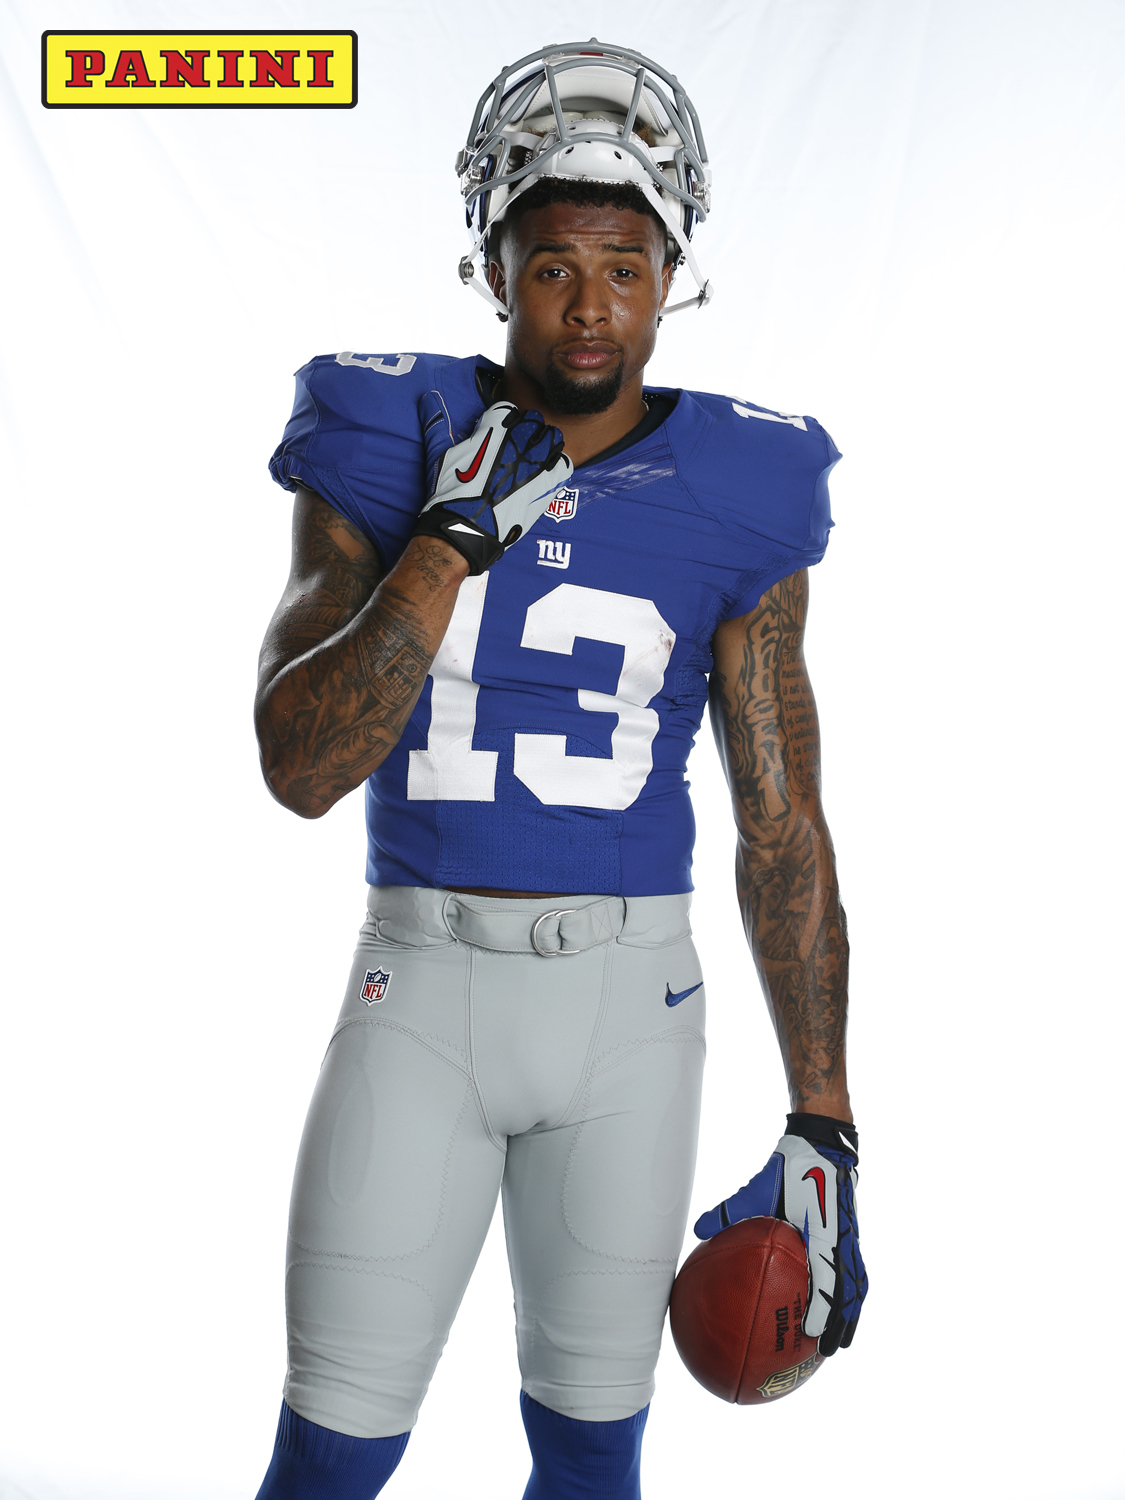 The Panini America NFLPA Rookie Premiere Recall: Giants WR Odell Beckham Jr. | The Official ...